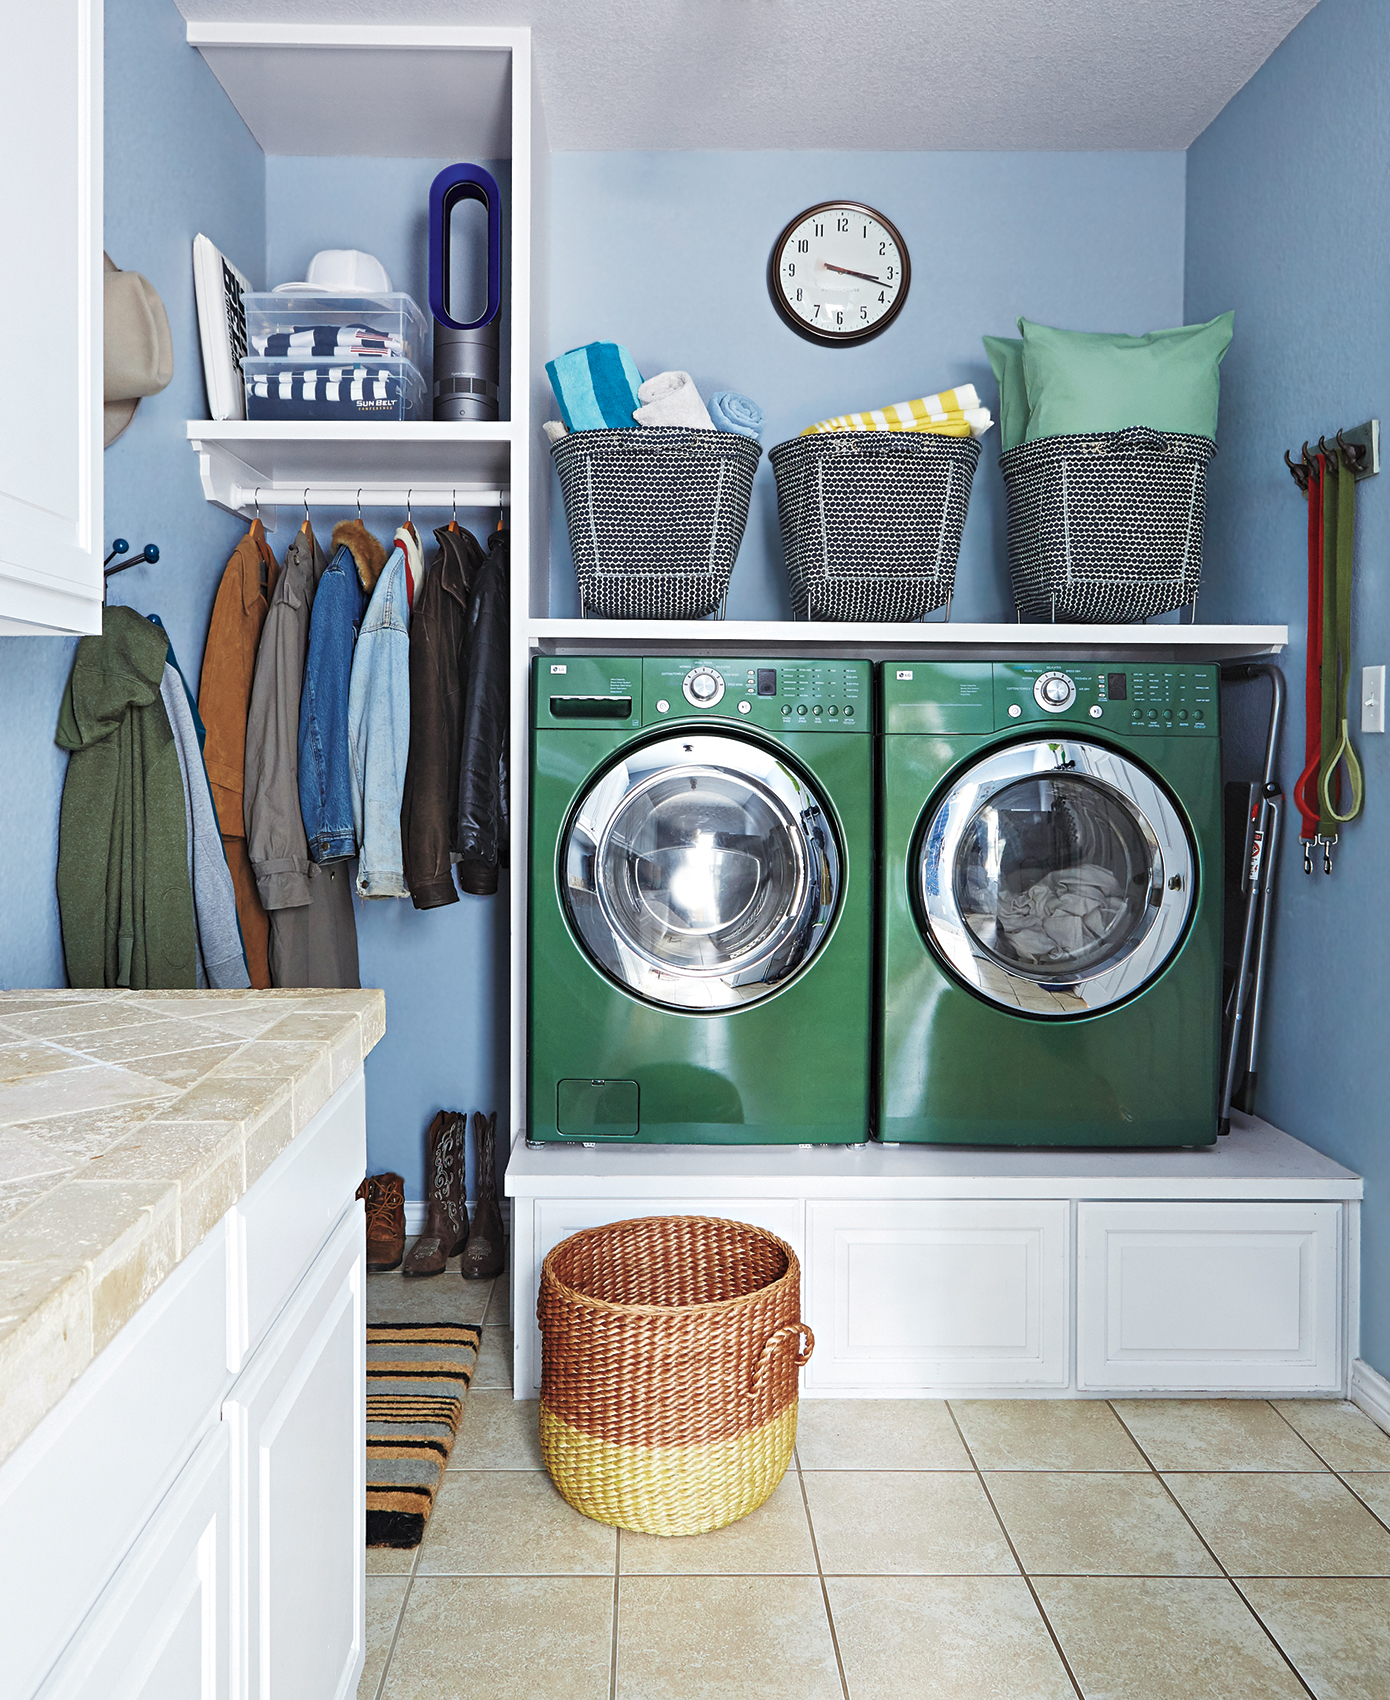 Laundry room with green washer and dryer